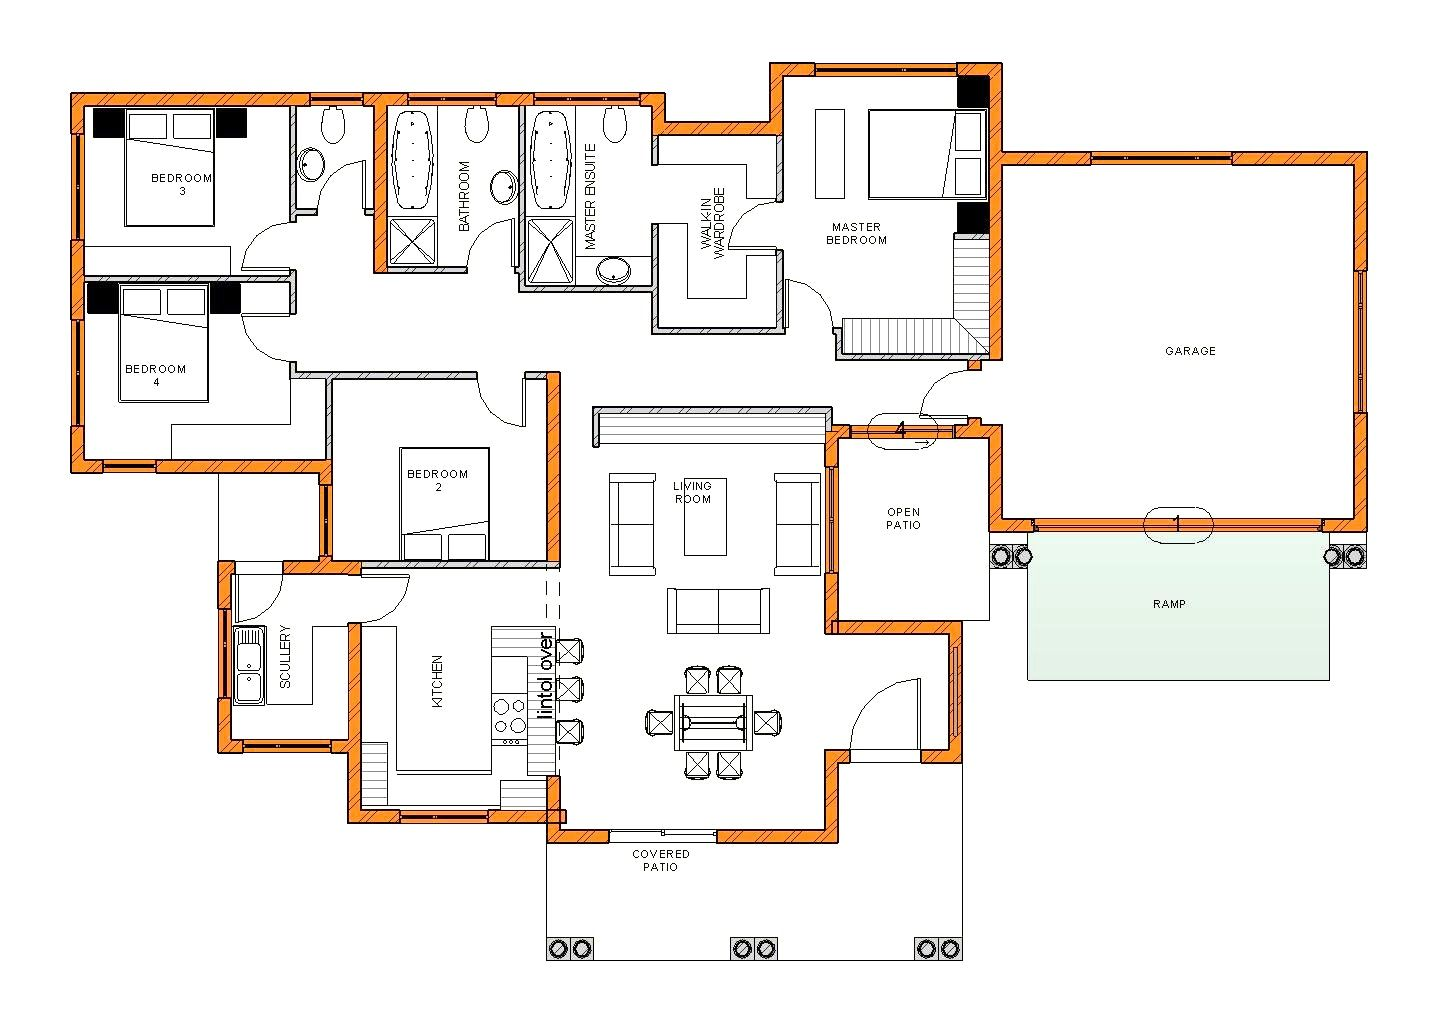 Modern 4 bedroom house plans south africa stunning tuscan - Single story 4 bedroom modern house plans ...